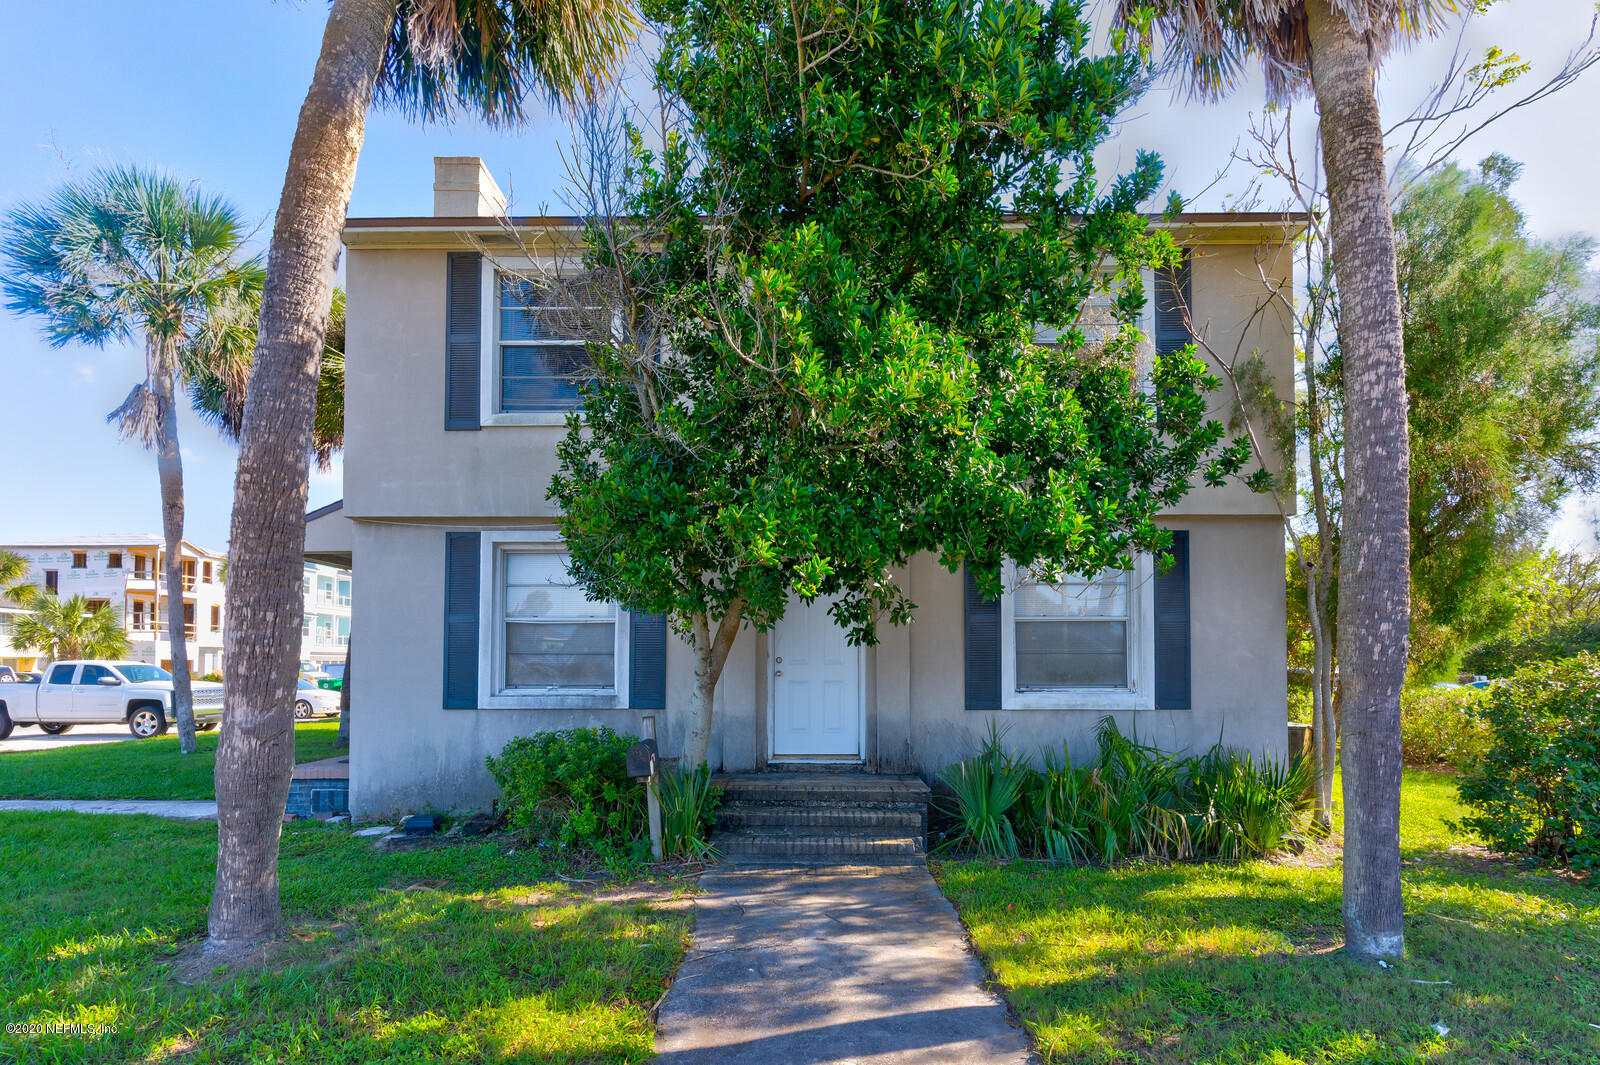 230 12TH AVE N, JACKSONVILLE BEACH, Florida 32250, 6 Bedrooms Bedrooms, ,4 BathroomsBathrooms,Residential,For Sale,230 12TH AVE N,2,1084092